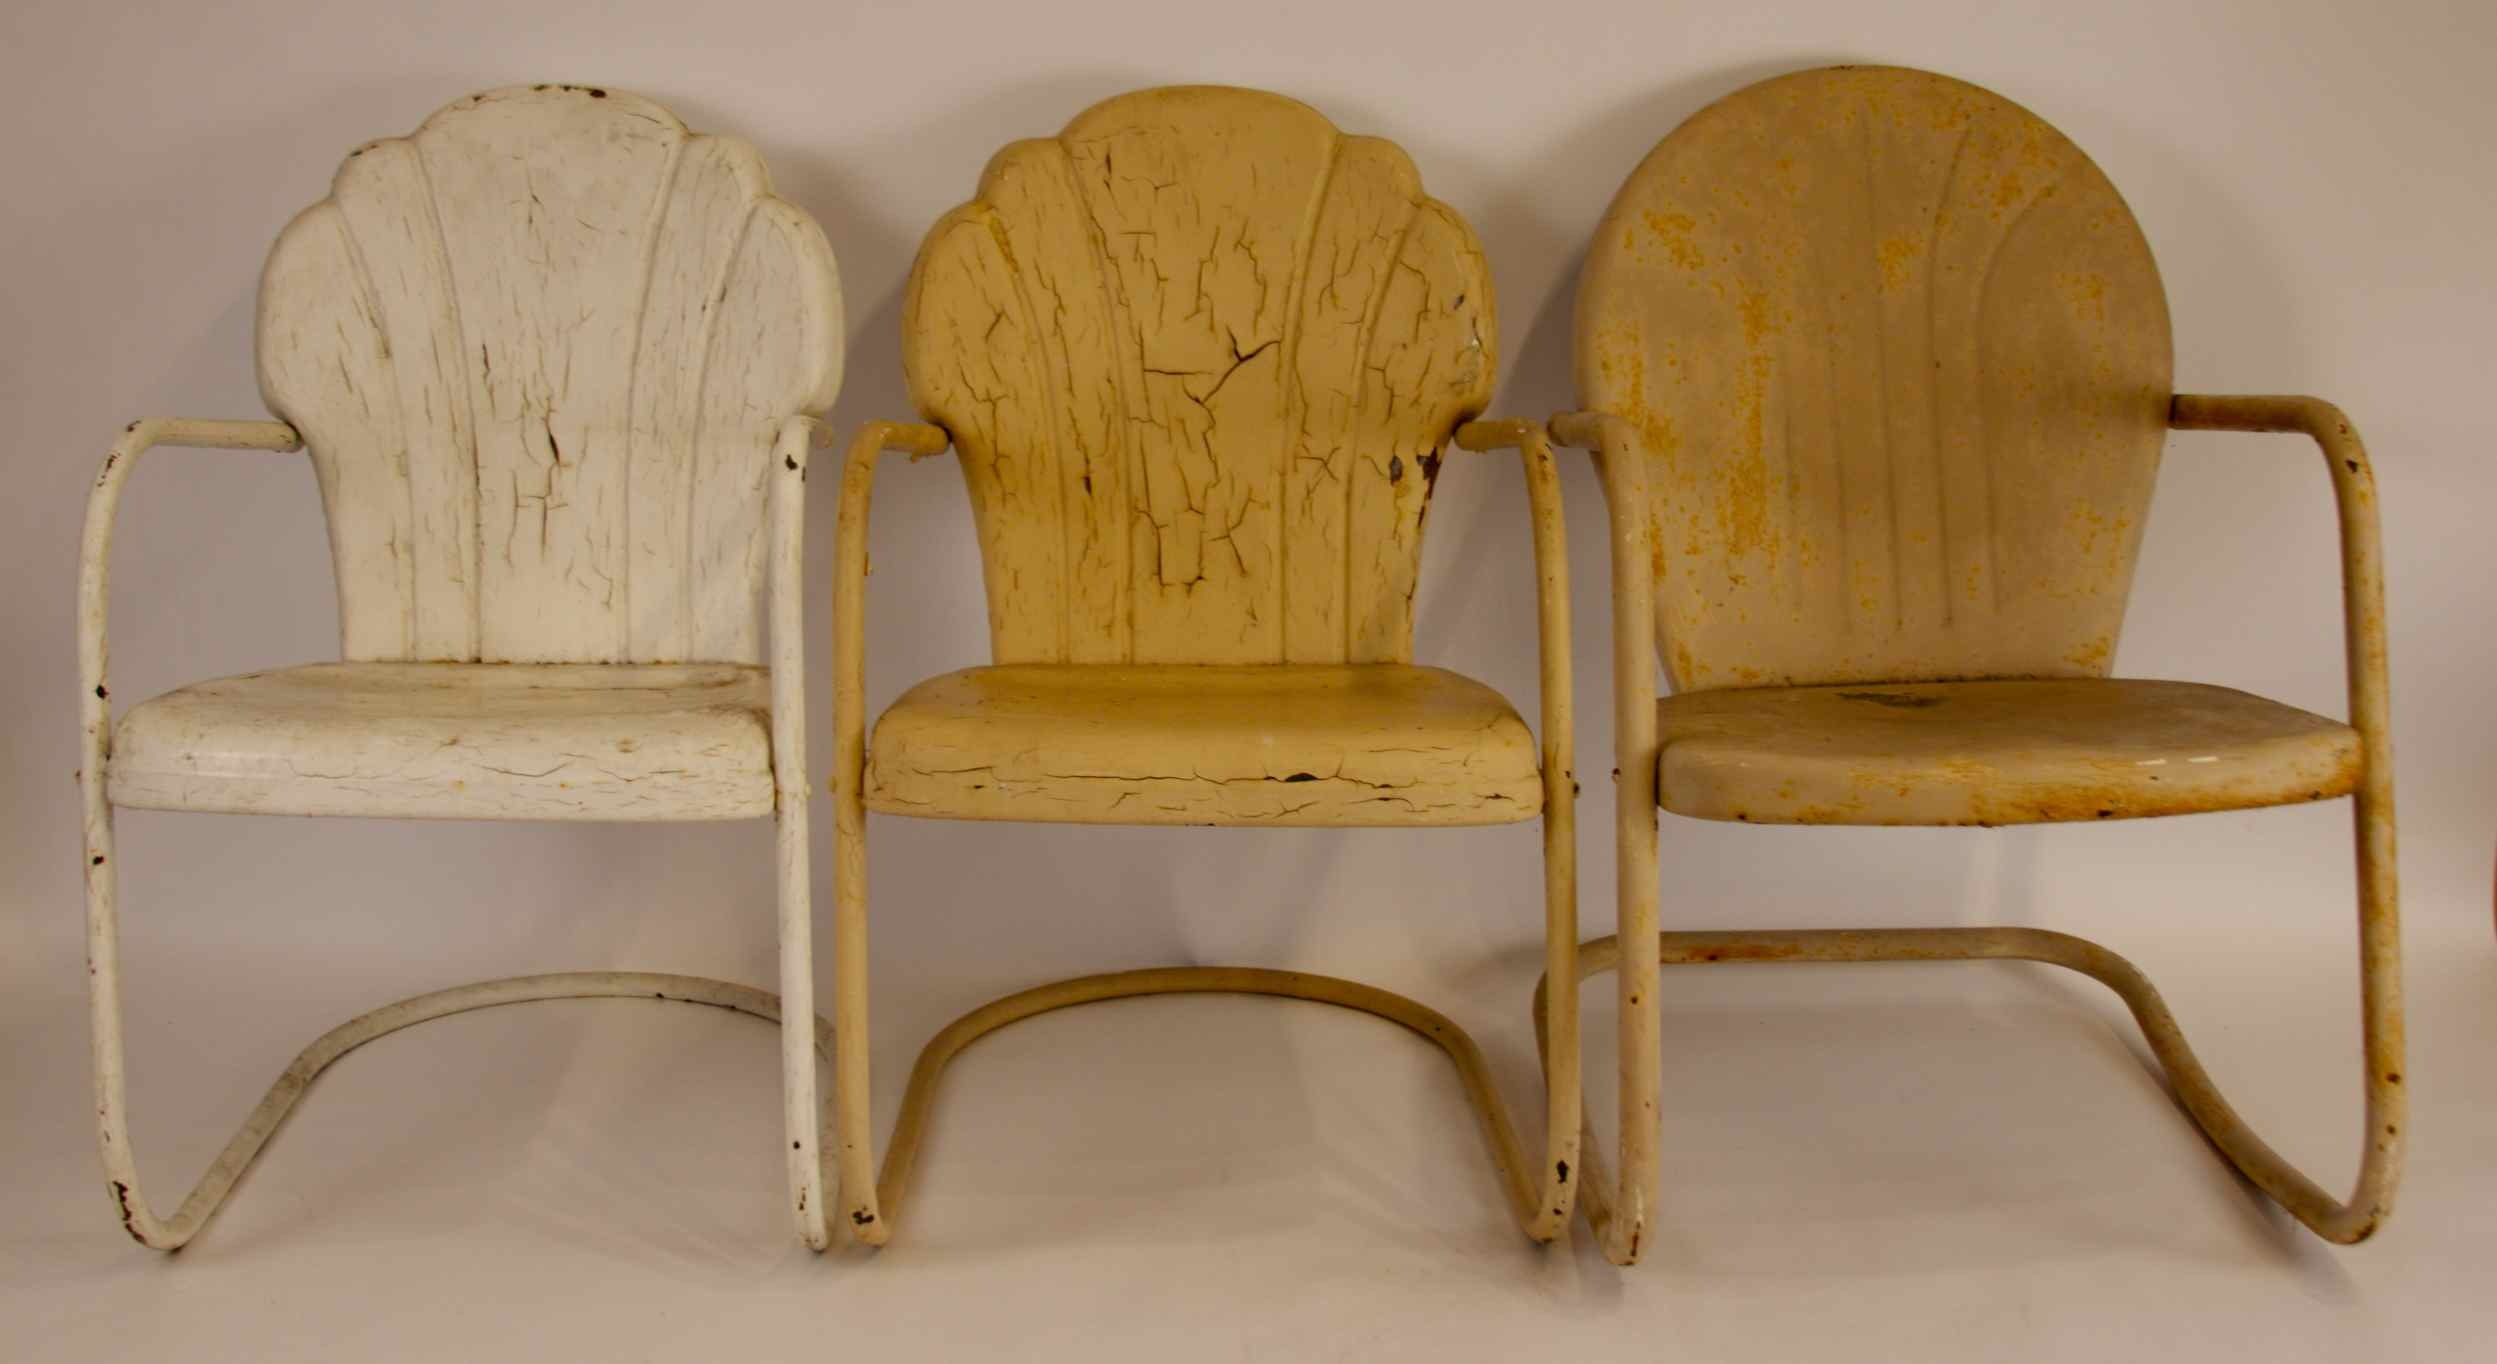 Charmant 3 Vintage Shell Back Metal Lawn Chairs ...